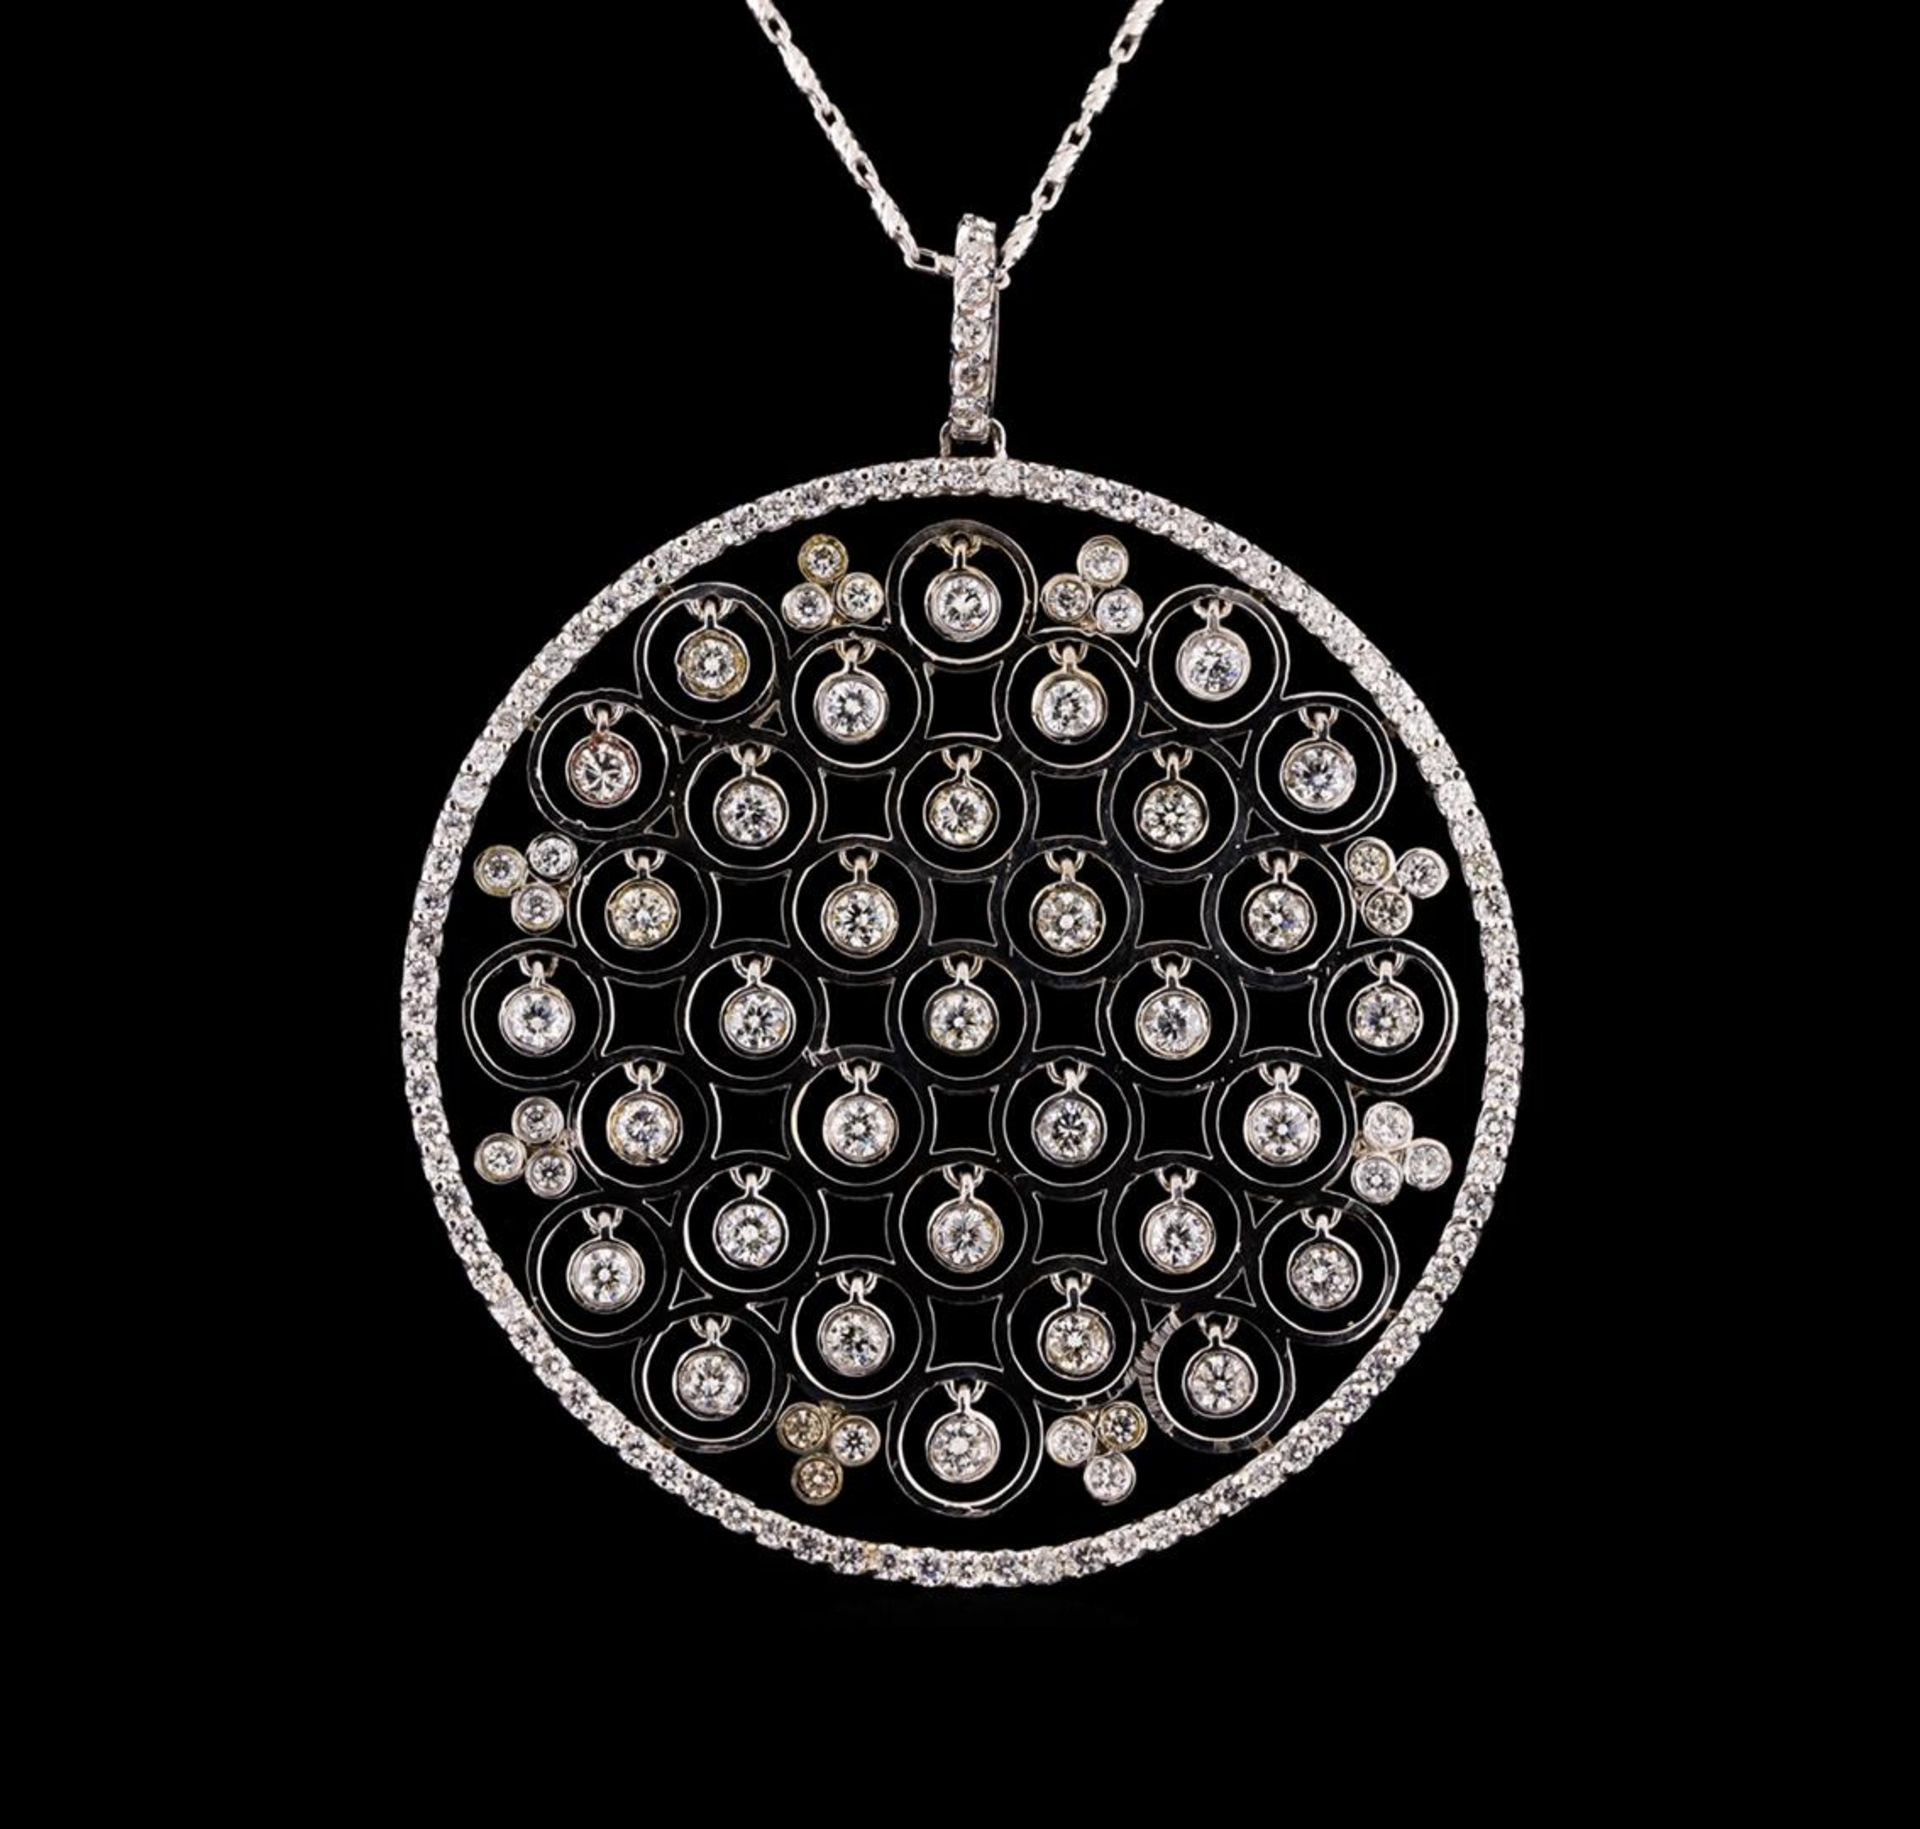 14KT White Gold 1.40 ctw Diamond Pendant With Chain - Image 2 of 3